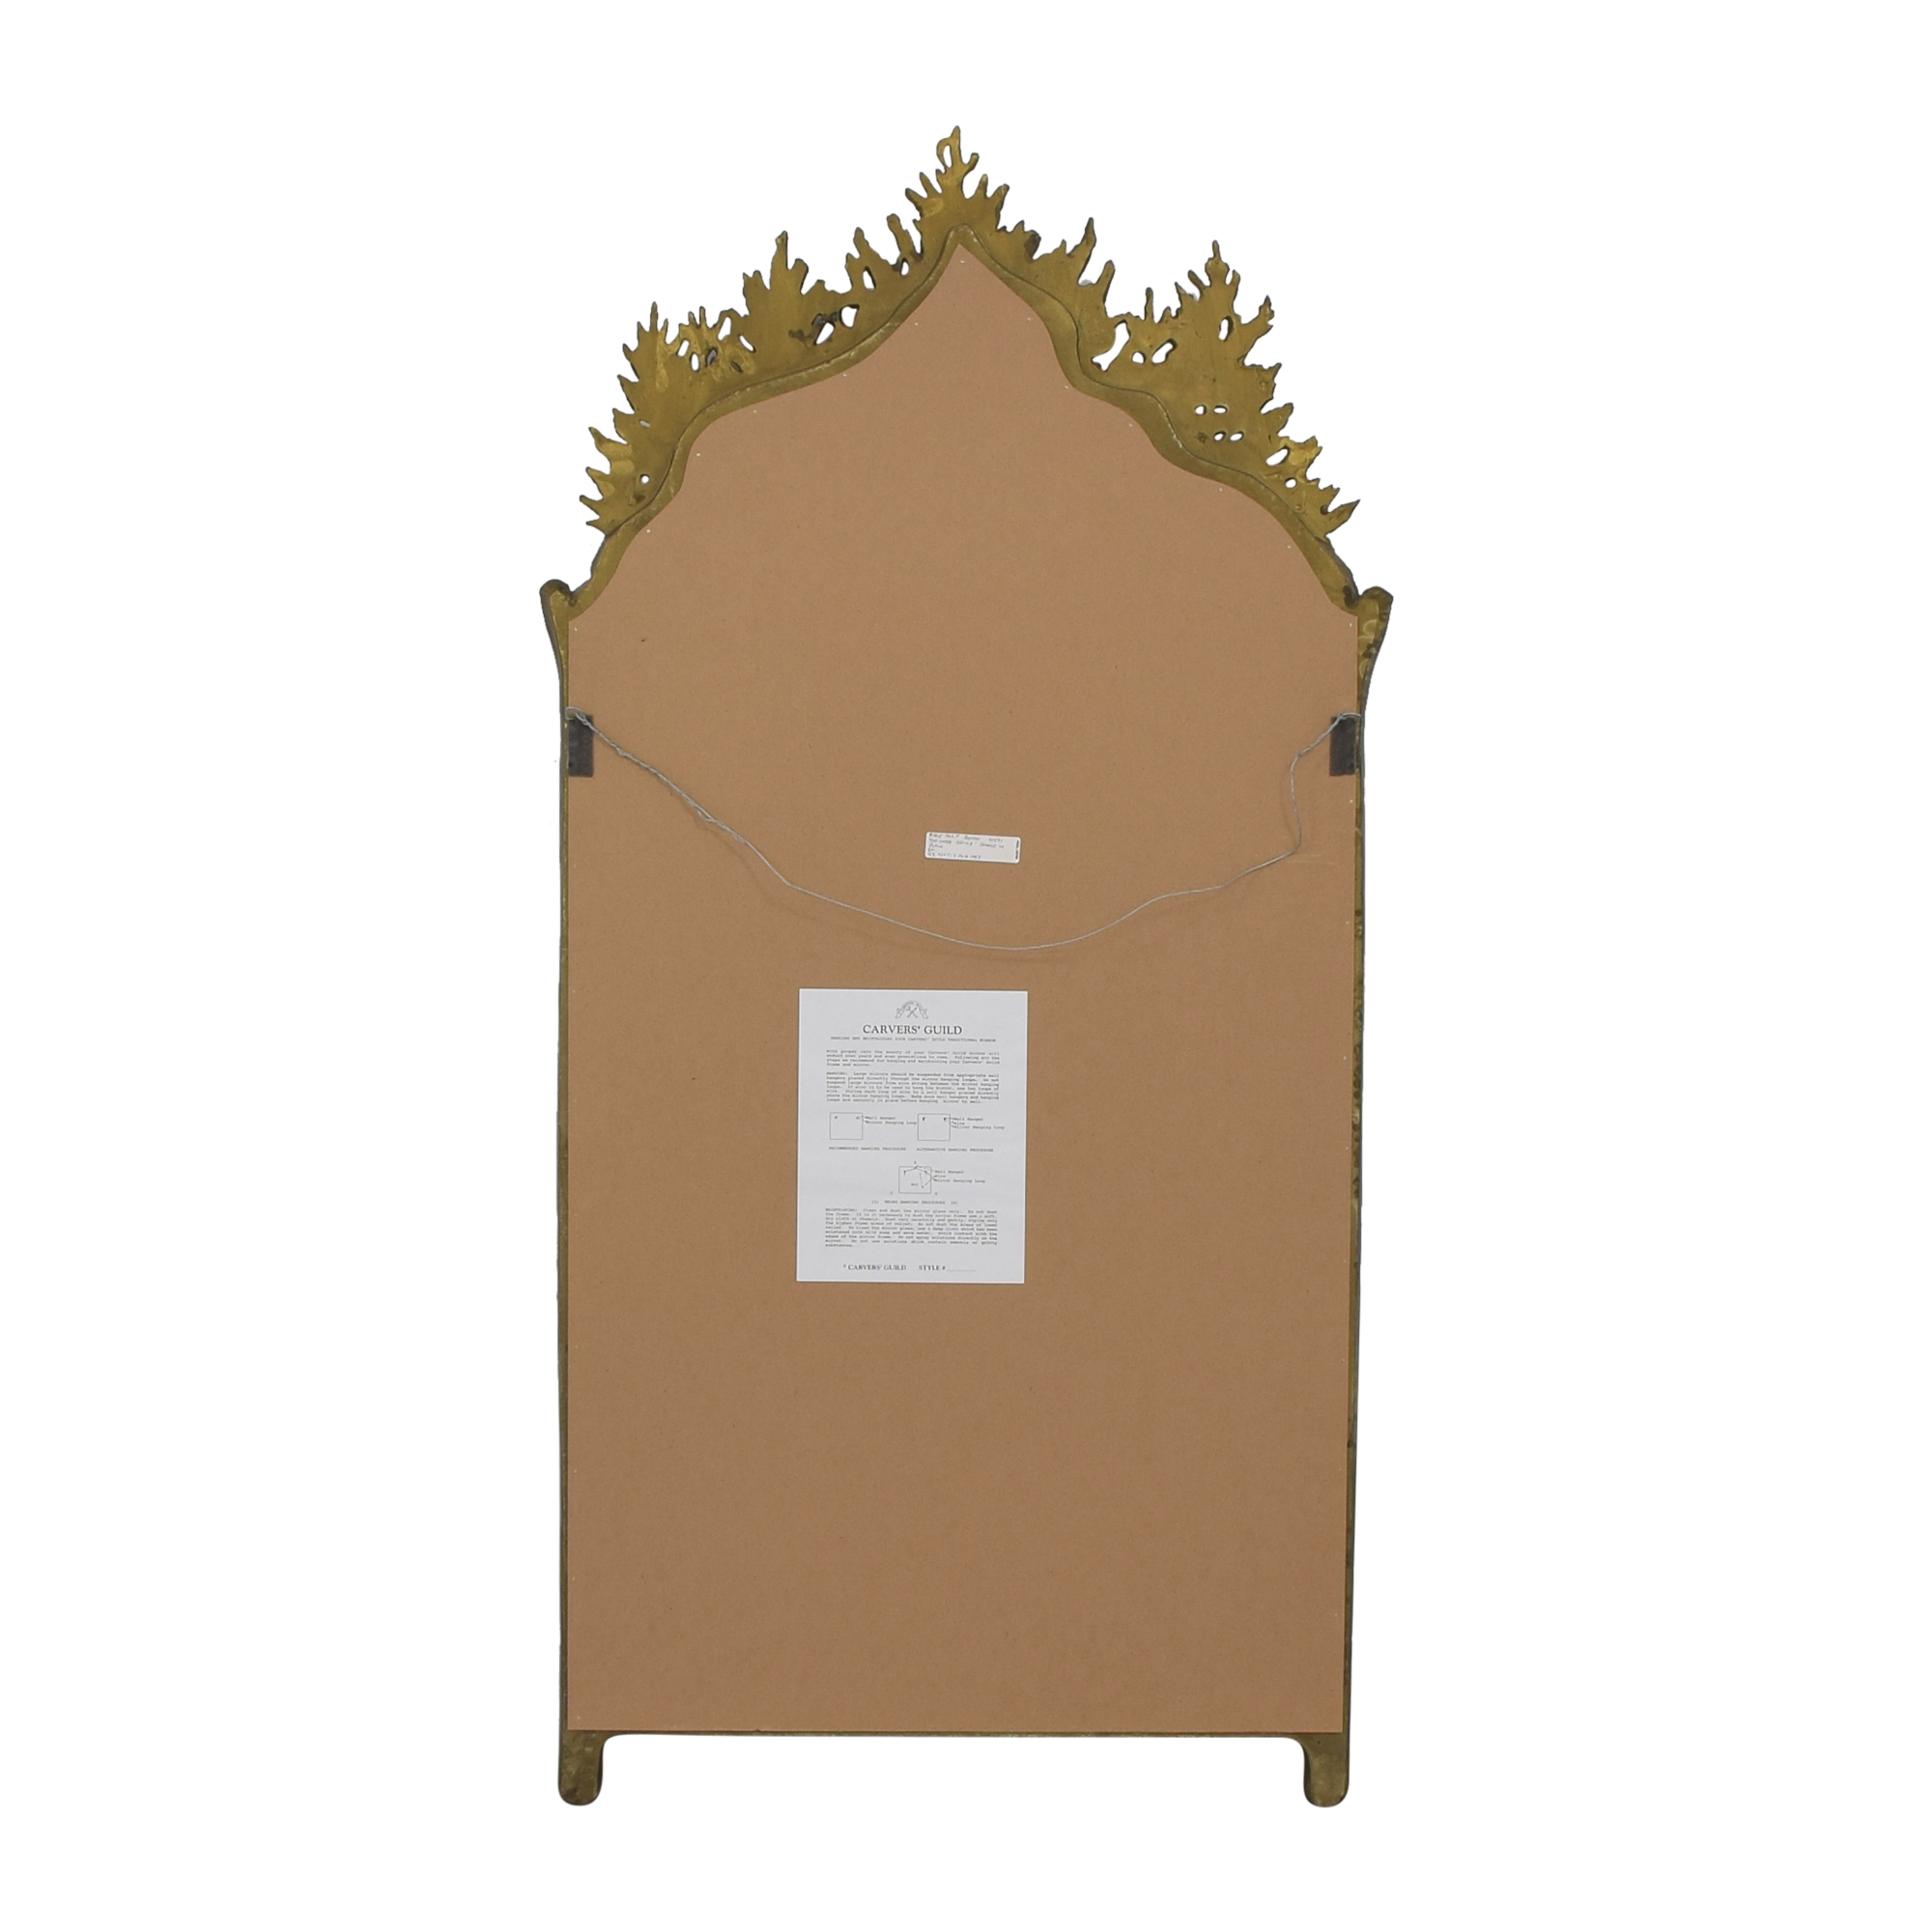 Carvers' Guild Carvers' Guild Traditional Mirror pa